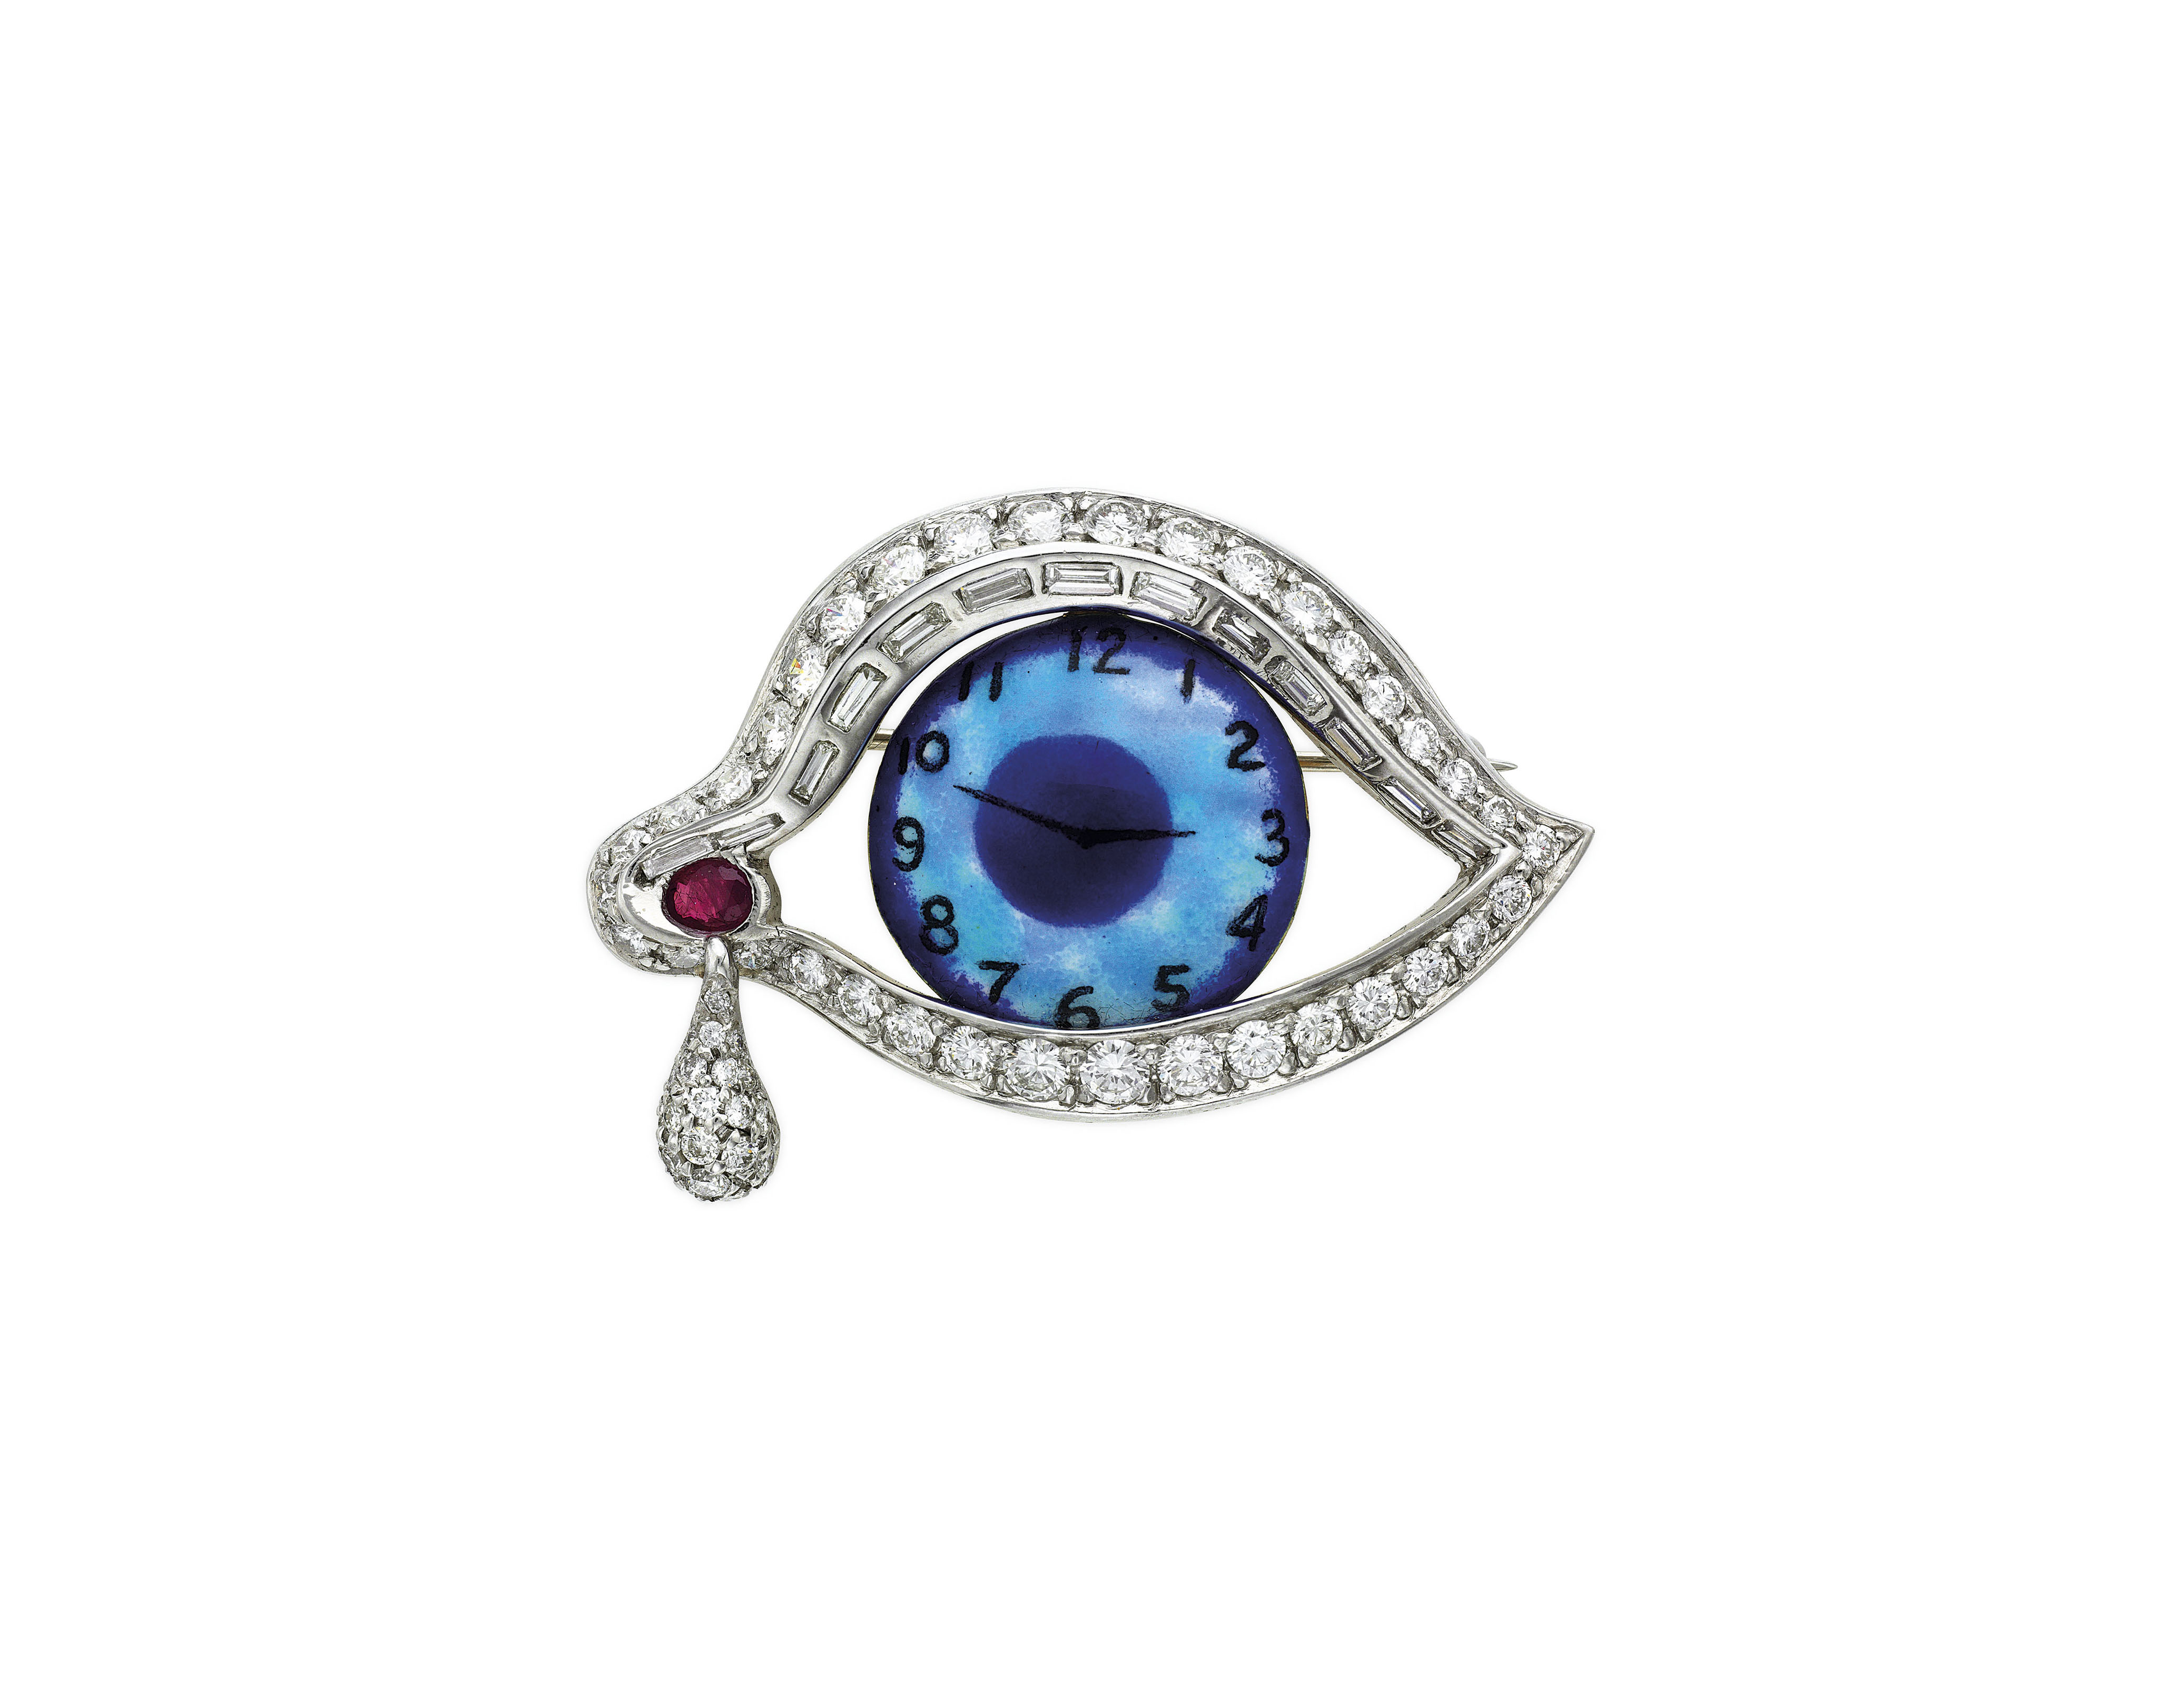 ENAMEL, DIAMOND AND RUBY 'EYE OF TIME' BROOCH, HENRYK KASTON FOR SALVADOR DALI